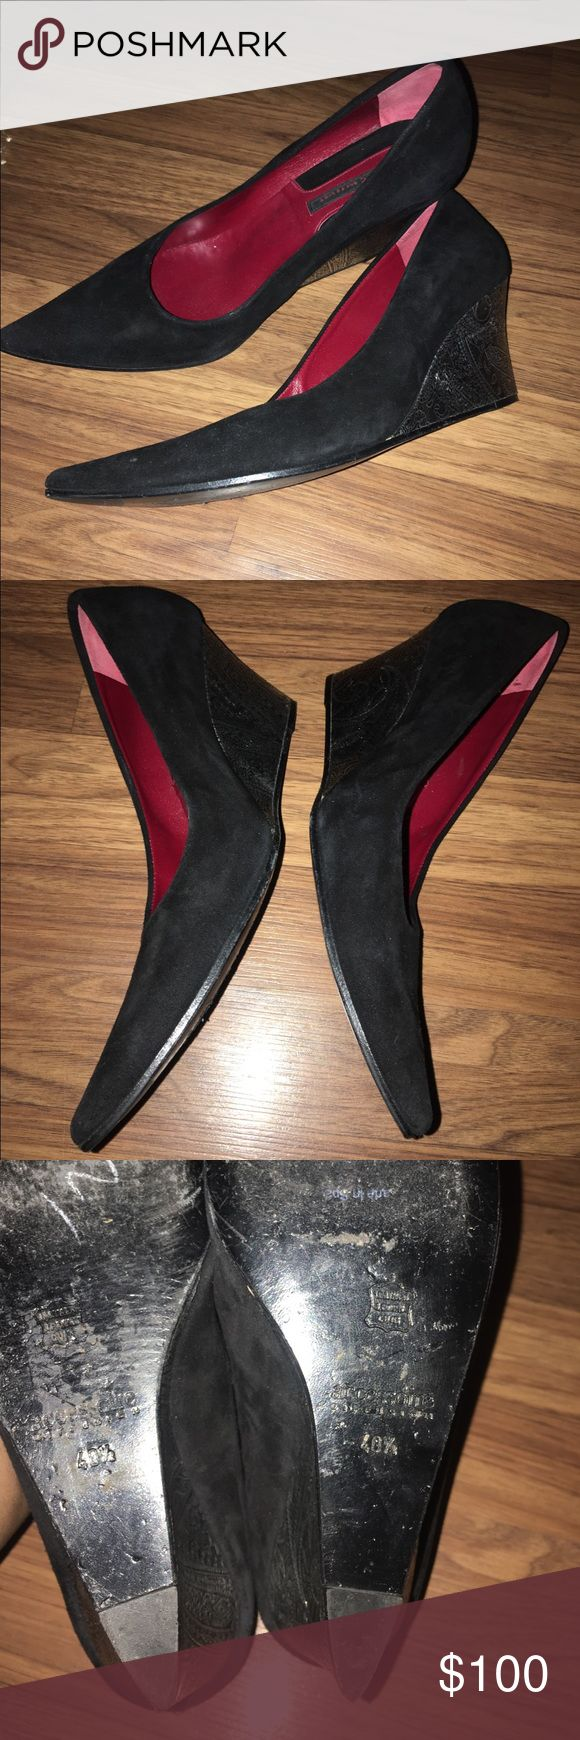 💥ACCESSOIRE DIFFUSION HEELS💥 Black suede accessoire diffusion heels! Like new size 40 1/2. Worn three times! Retail $899 real GENUINE LEATHER MADE IN FRANCE! The store front is all over Italy and France and etc. Beautiful elegant classy shoes!! Accessoire Diffusion Shoes Flats & Loafers